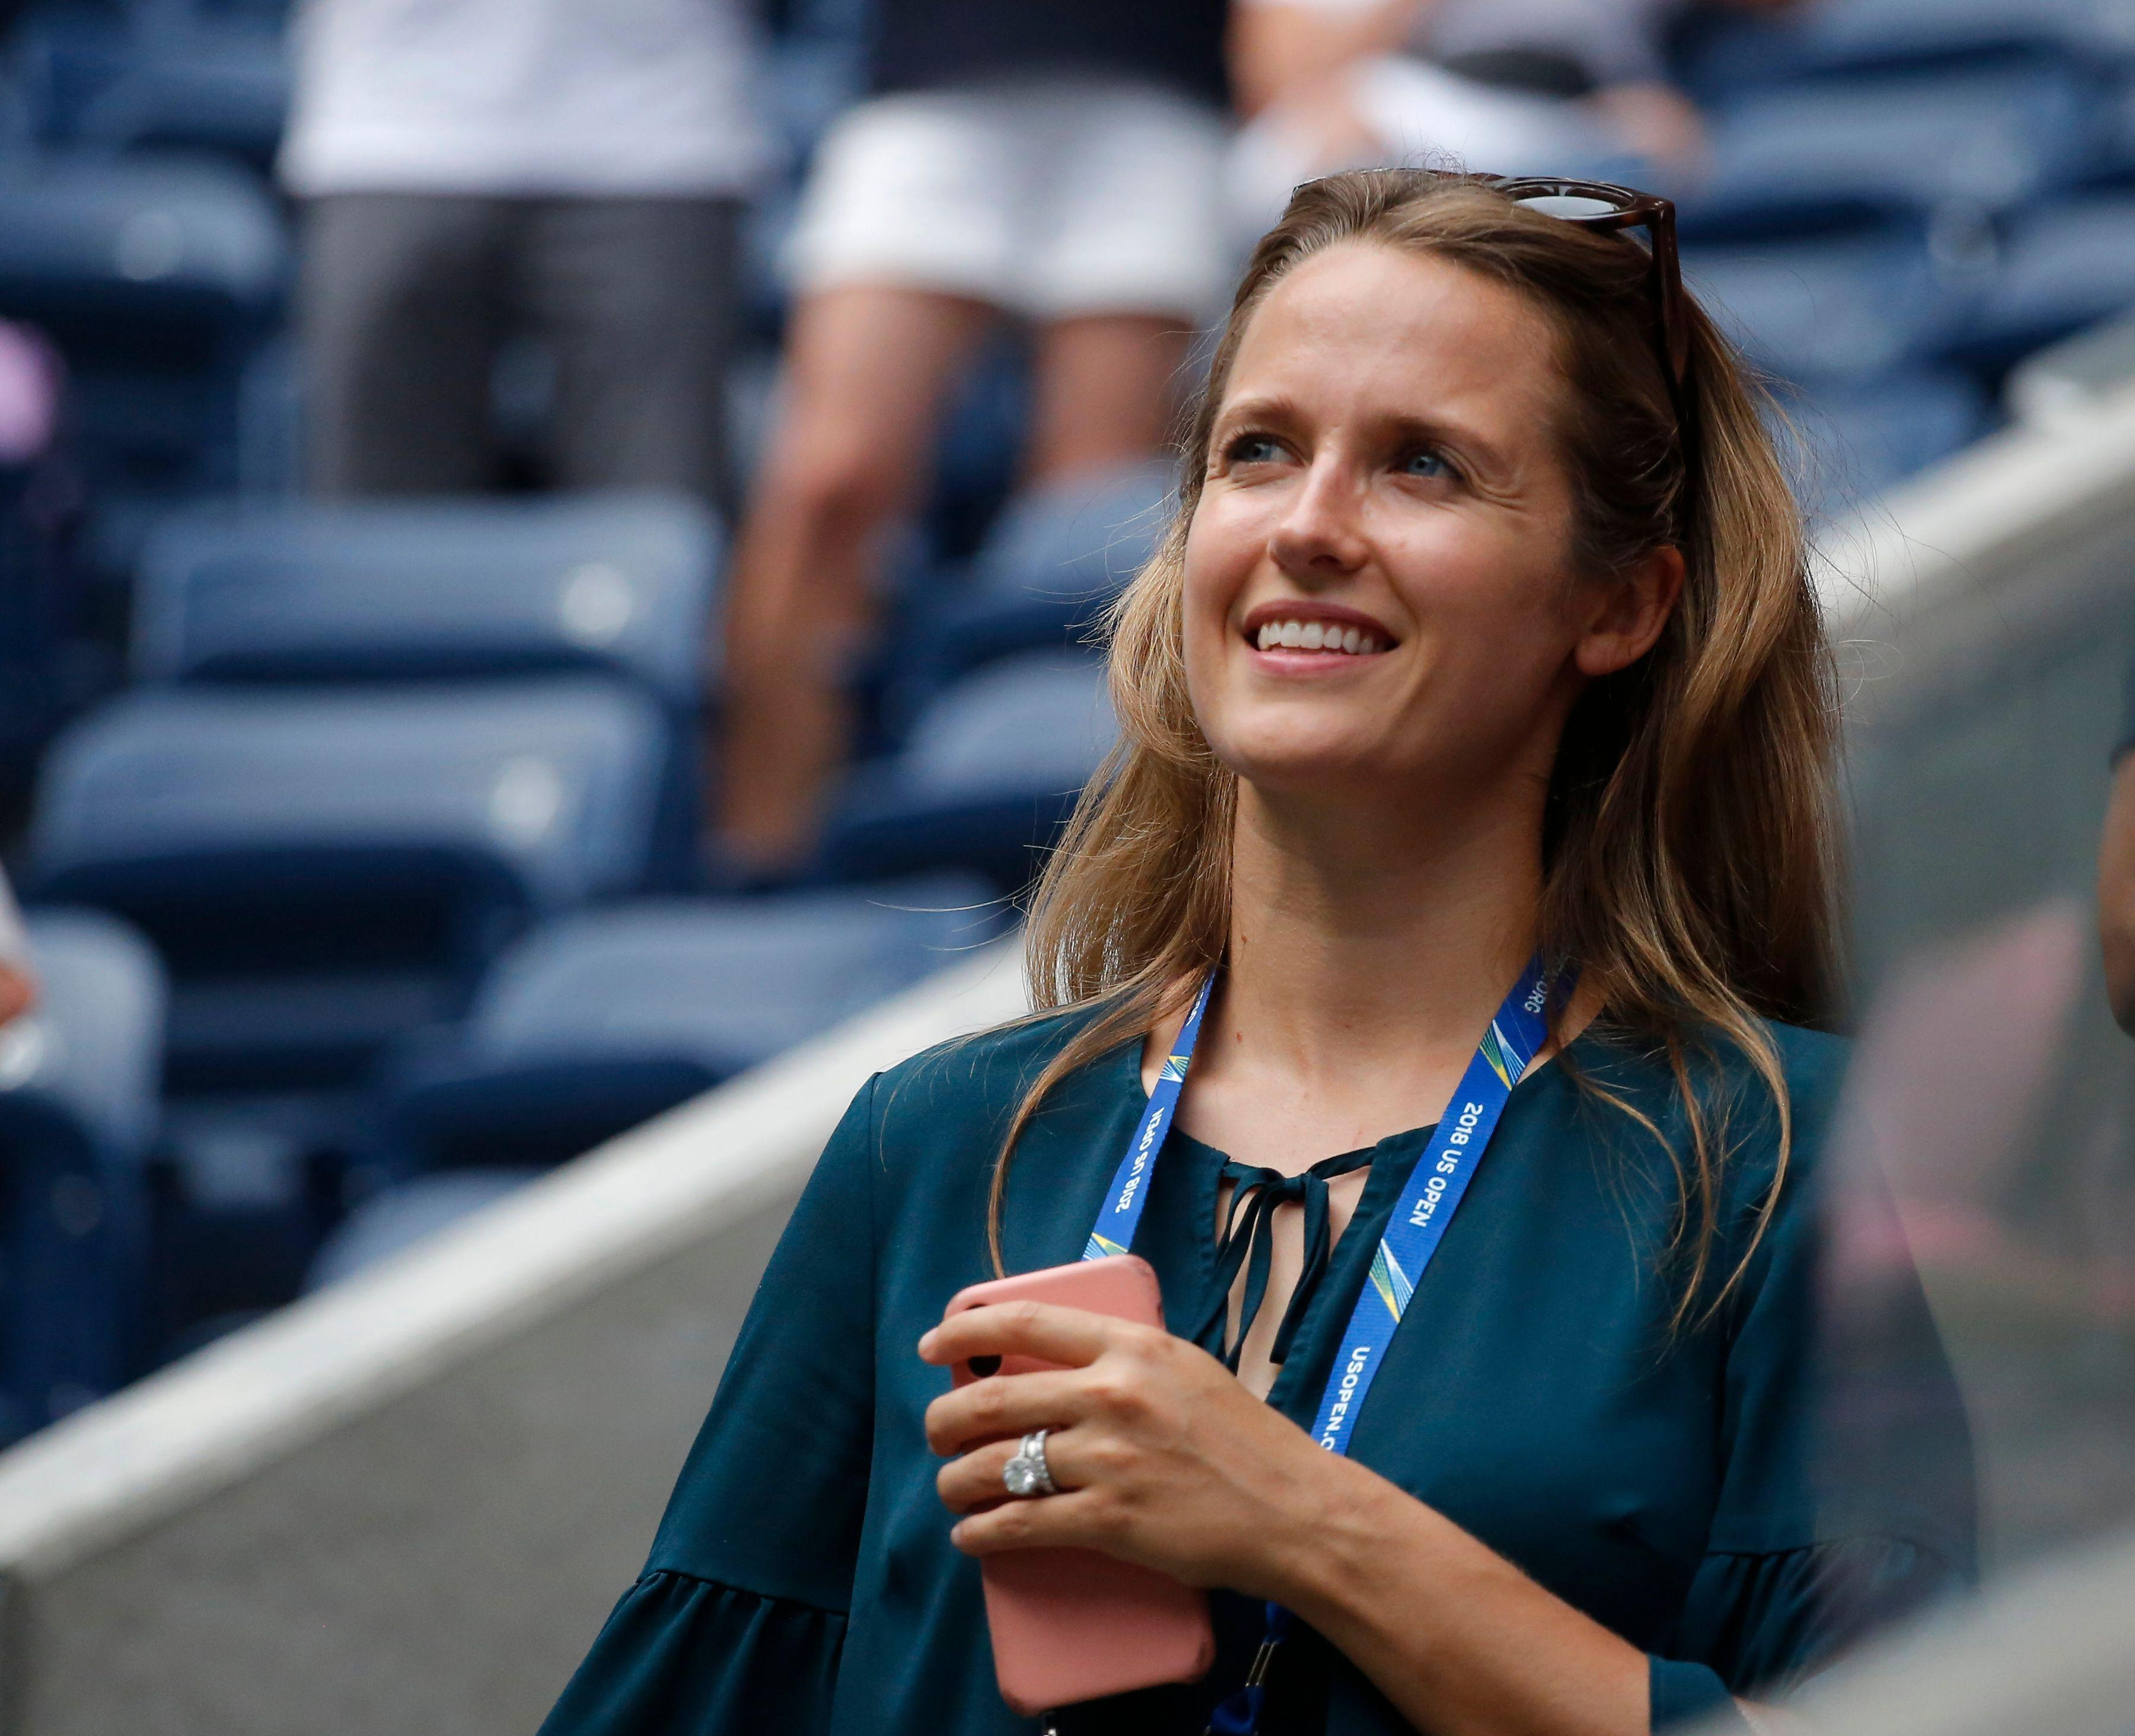 Andy Murray's wife Kim watches him from the stands at the US Open